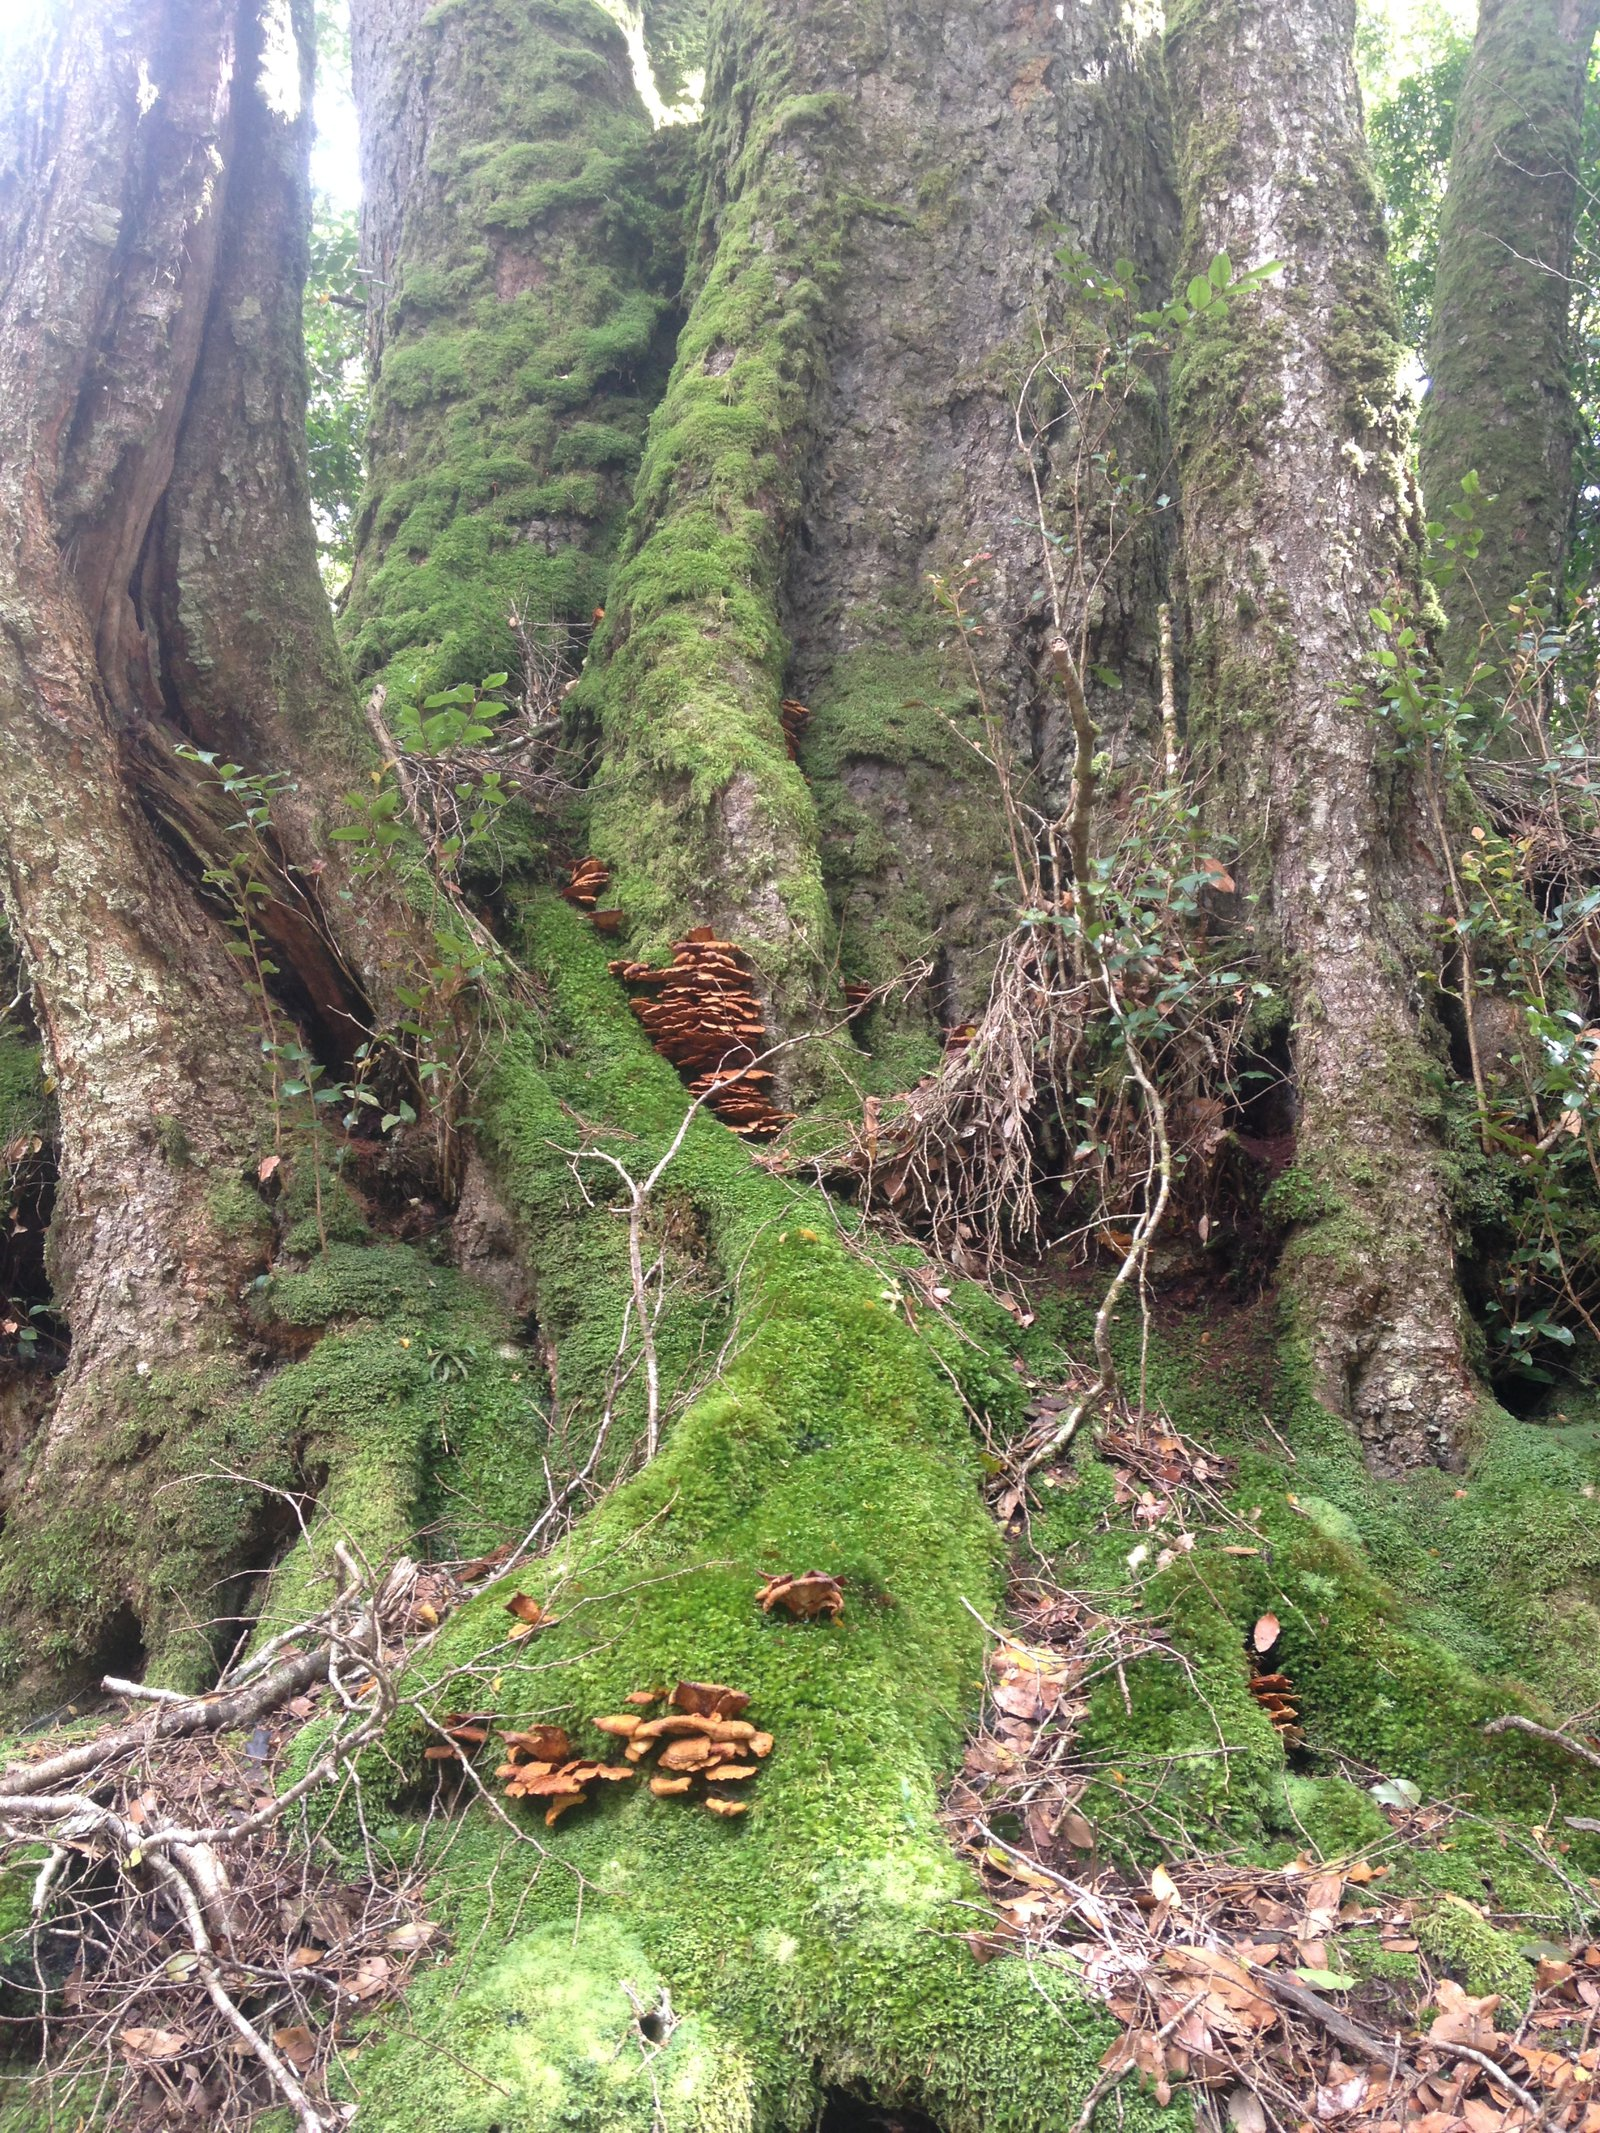 A 2000-year-old southern beech on the summit of the Border Ranges, home to Amphistomus cunninghamensis, one of our target species. Photographer: Chris Reid